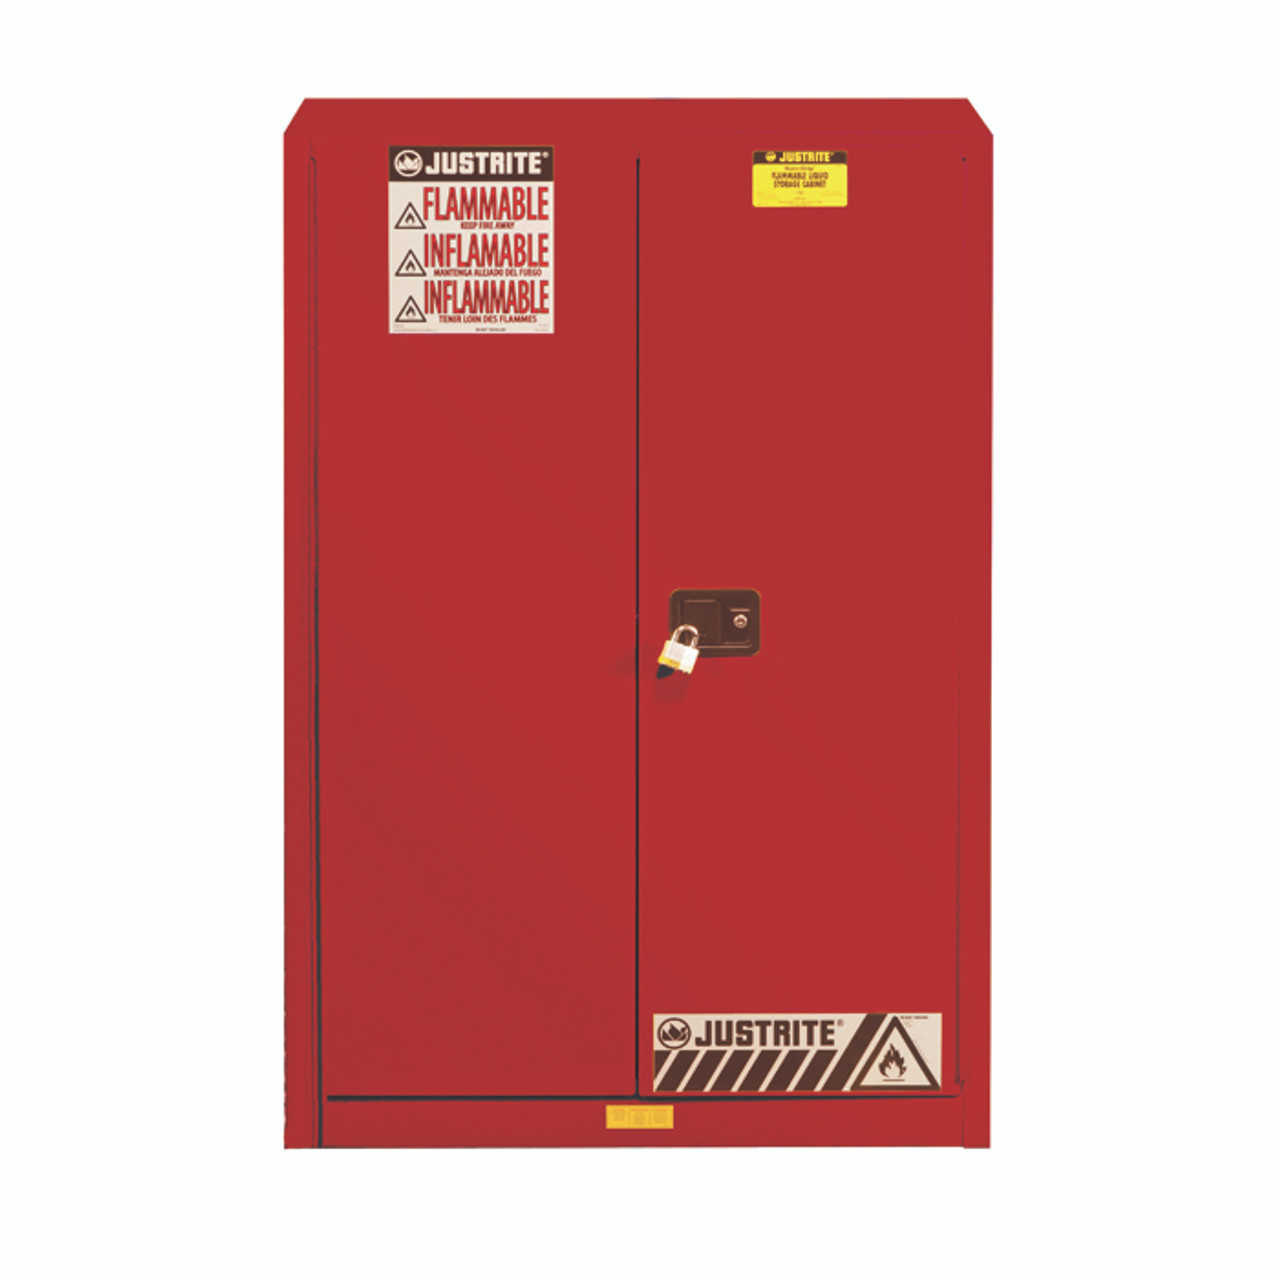 Justrite 894521 Flammable Cabinet 45 Gal - Industrial ...